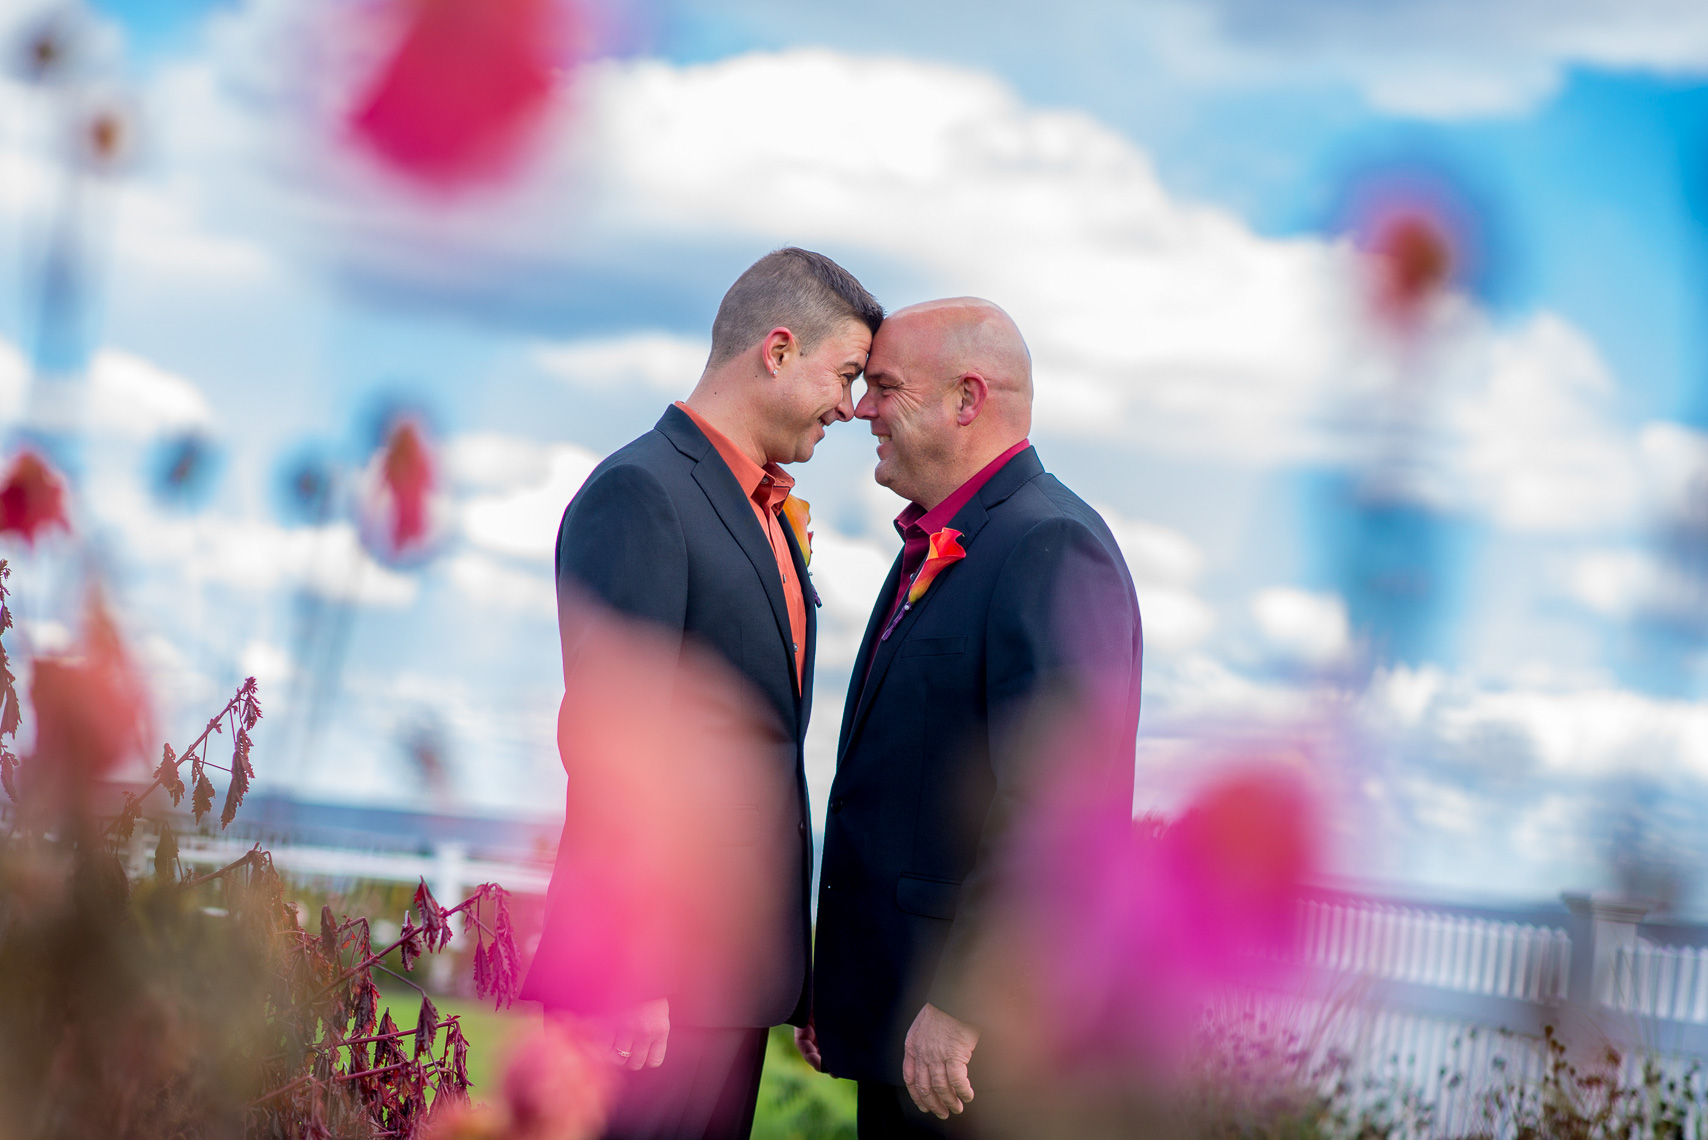 Tony_Dave_Wedding_044.JPG